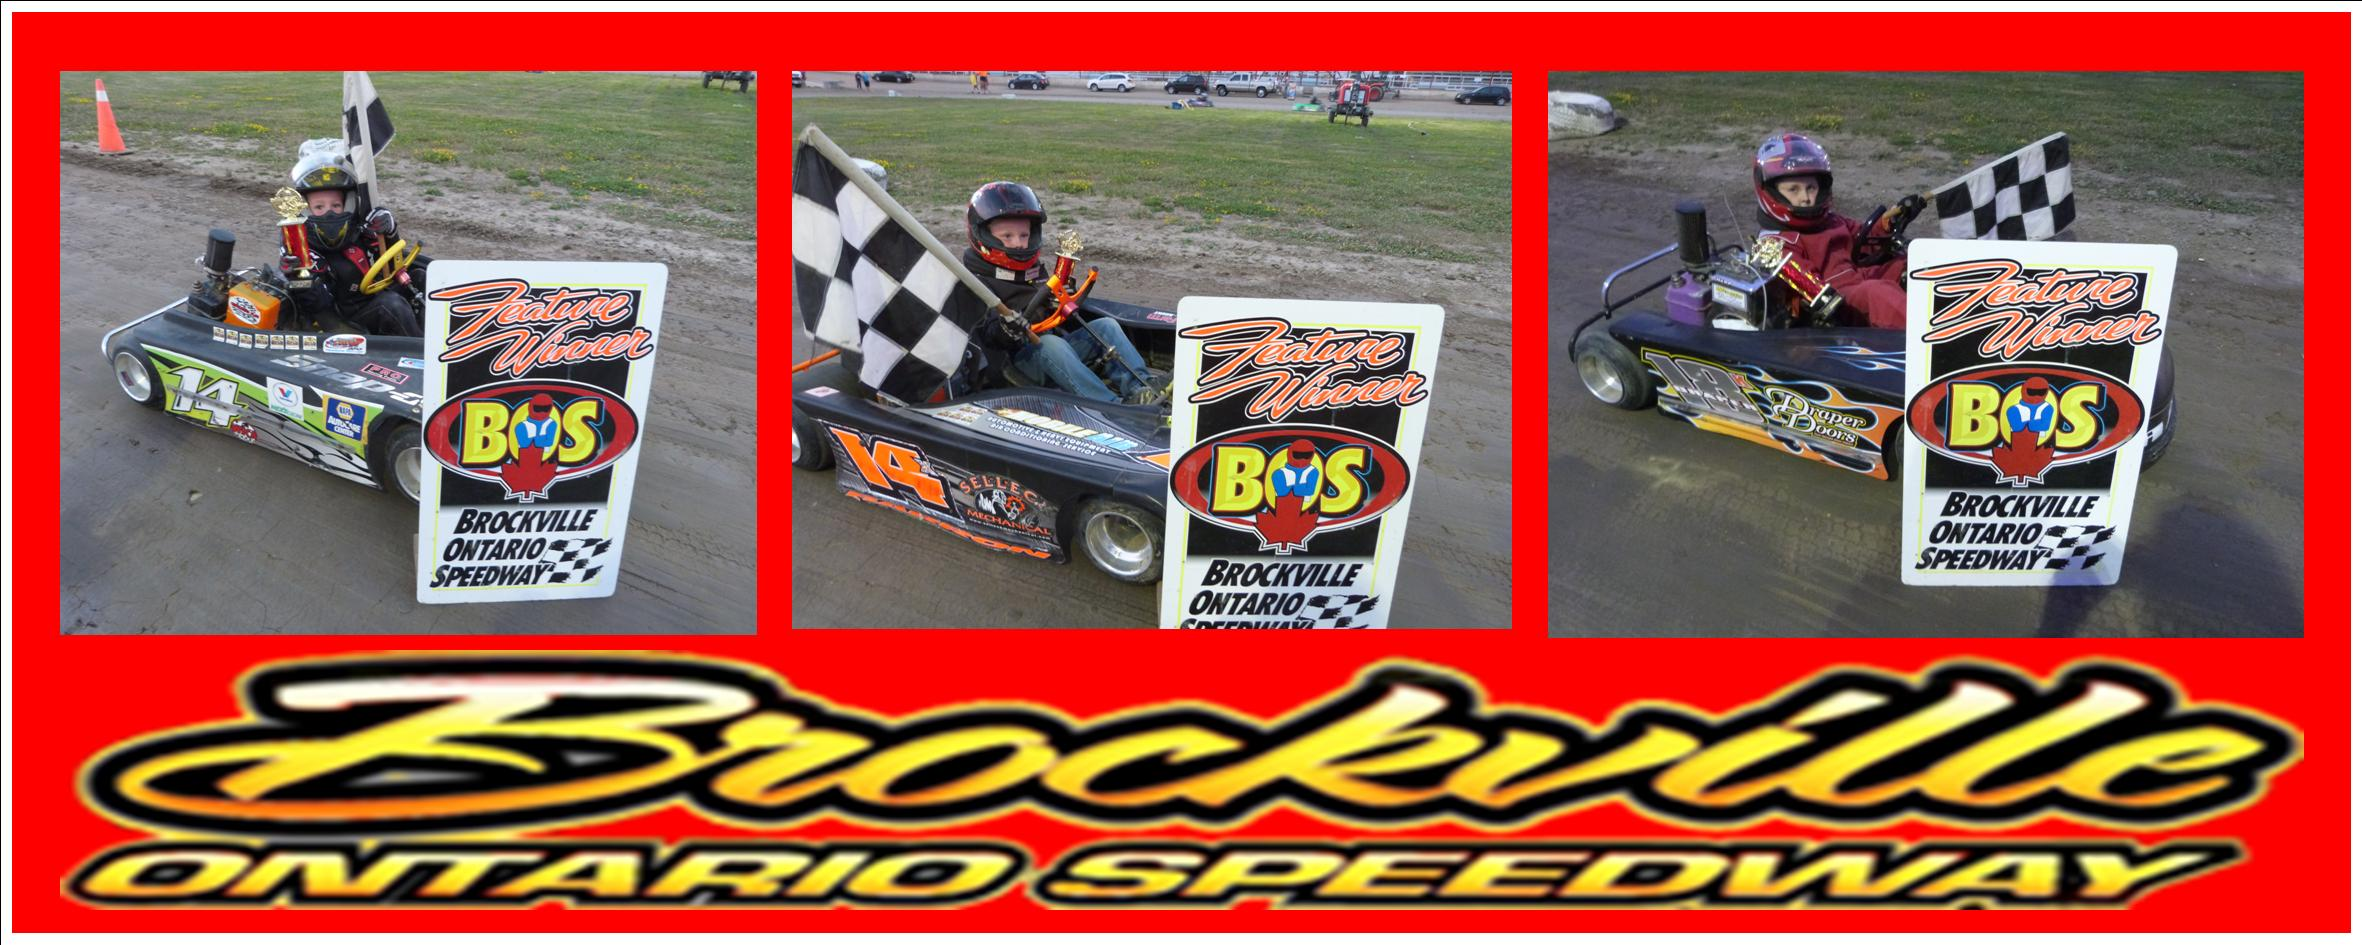 AIDEN BERRY, BARRON GREER, KALEN DRAPER, TRENT WALLACE, ZACK RENAUD, DYLAN TINKLER, BRIAN CLARK AND MATHIEU AUBIN SCORE BIG WINS ON THE BULLRING AT BROCKVILLE